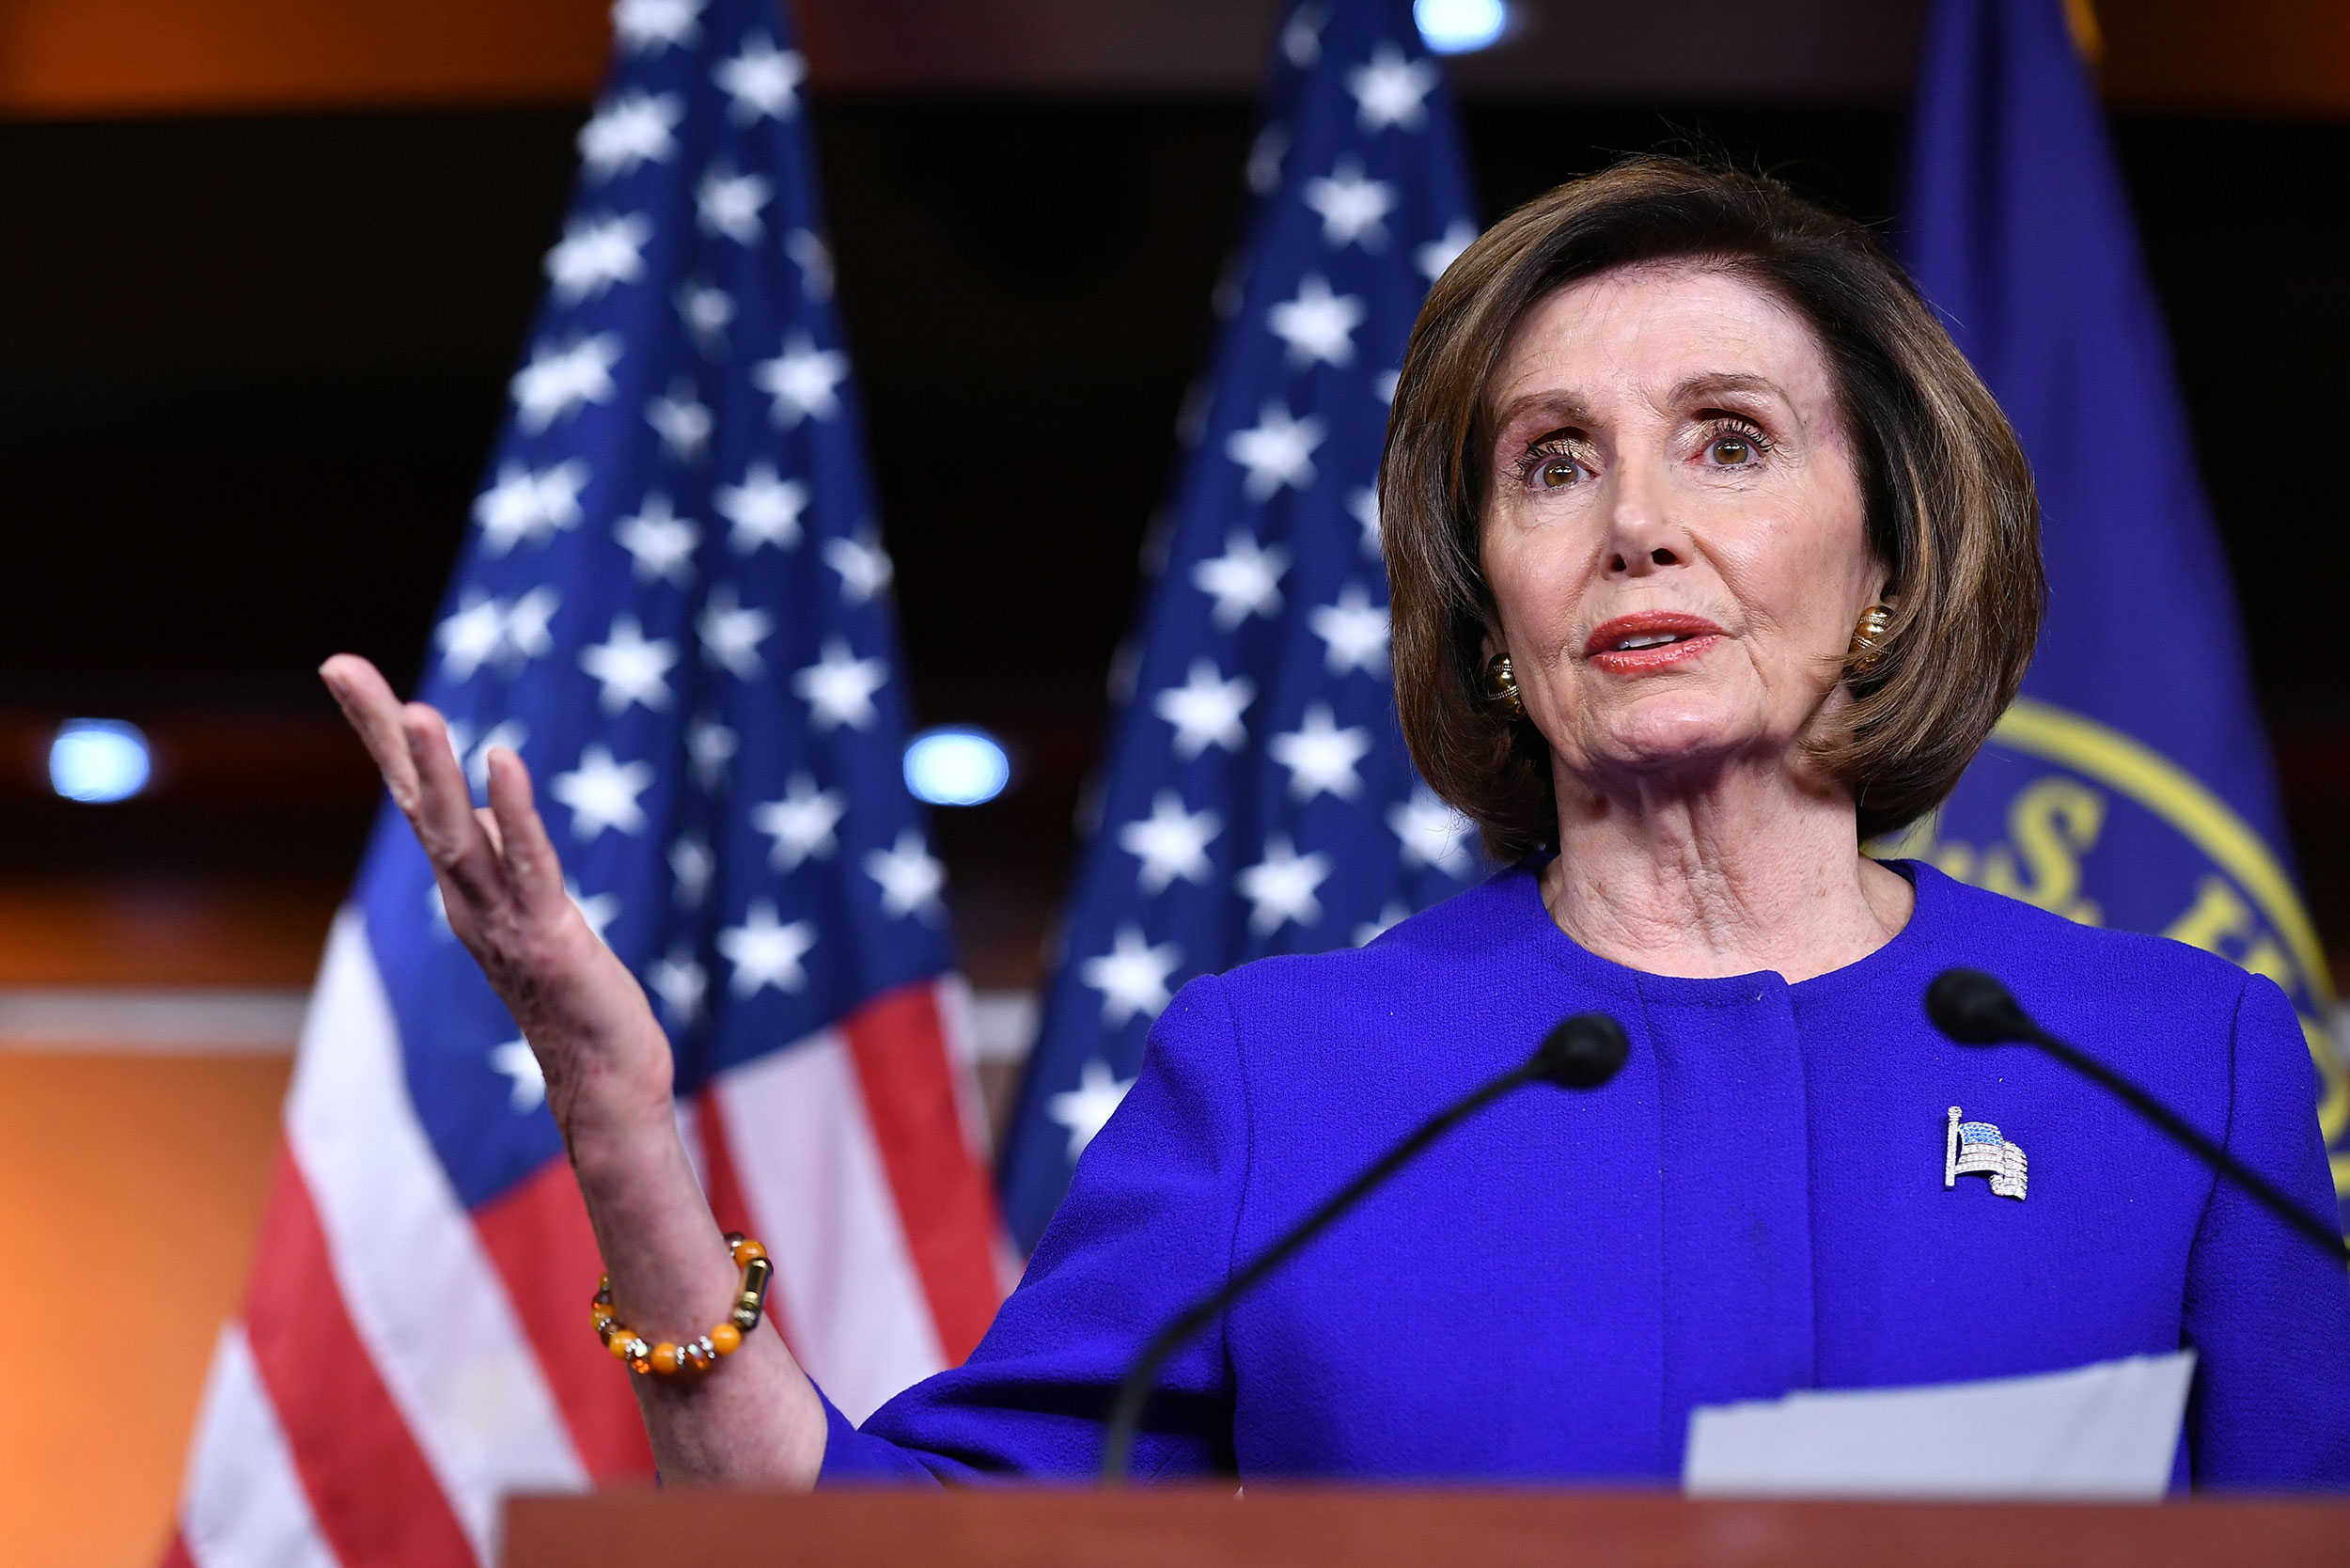 Pelosi says Congress 'close' to reaching bipartisan agreement on coronavirus funding